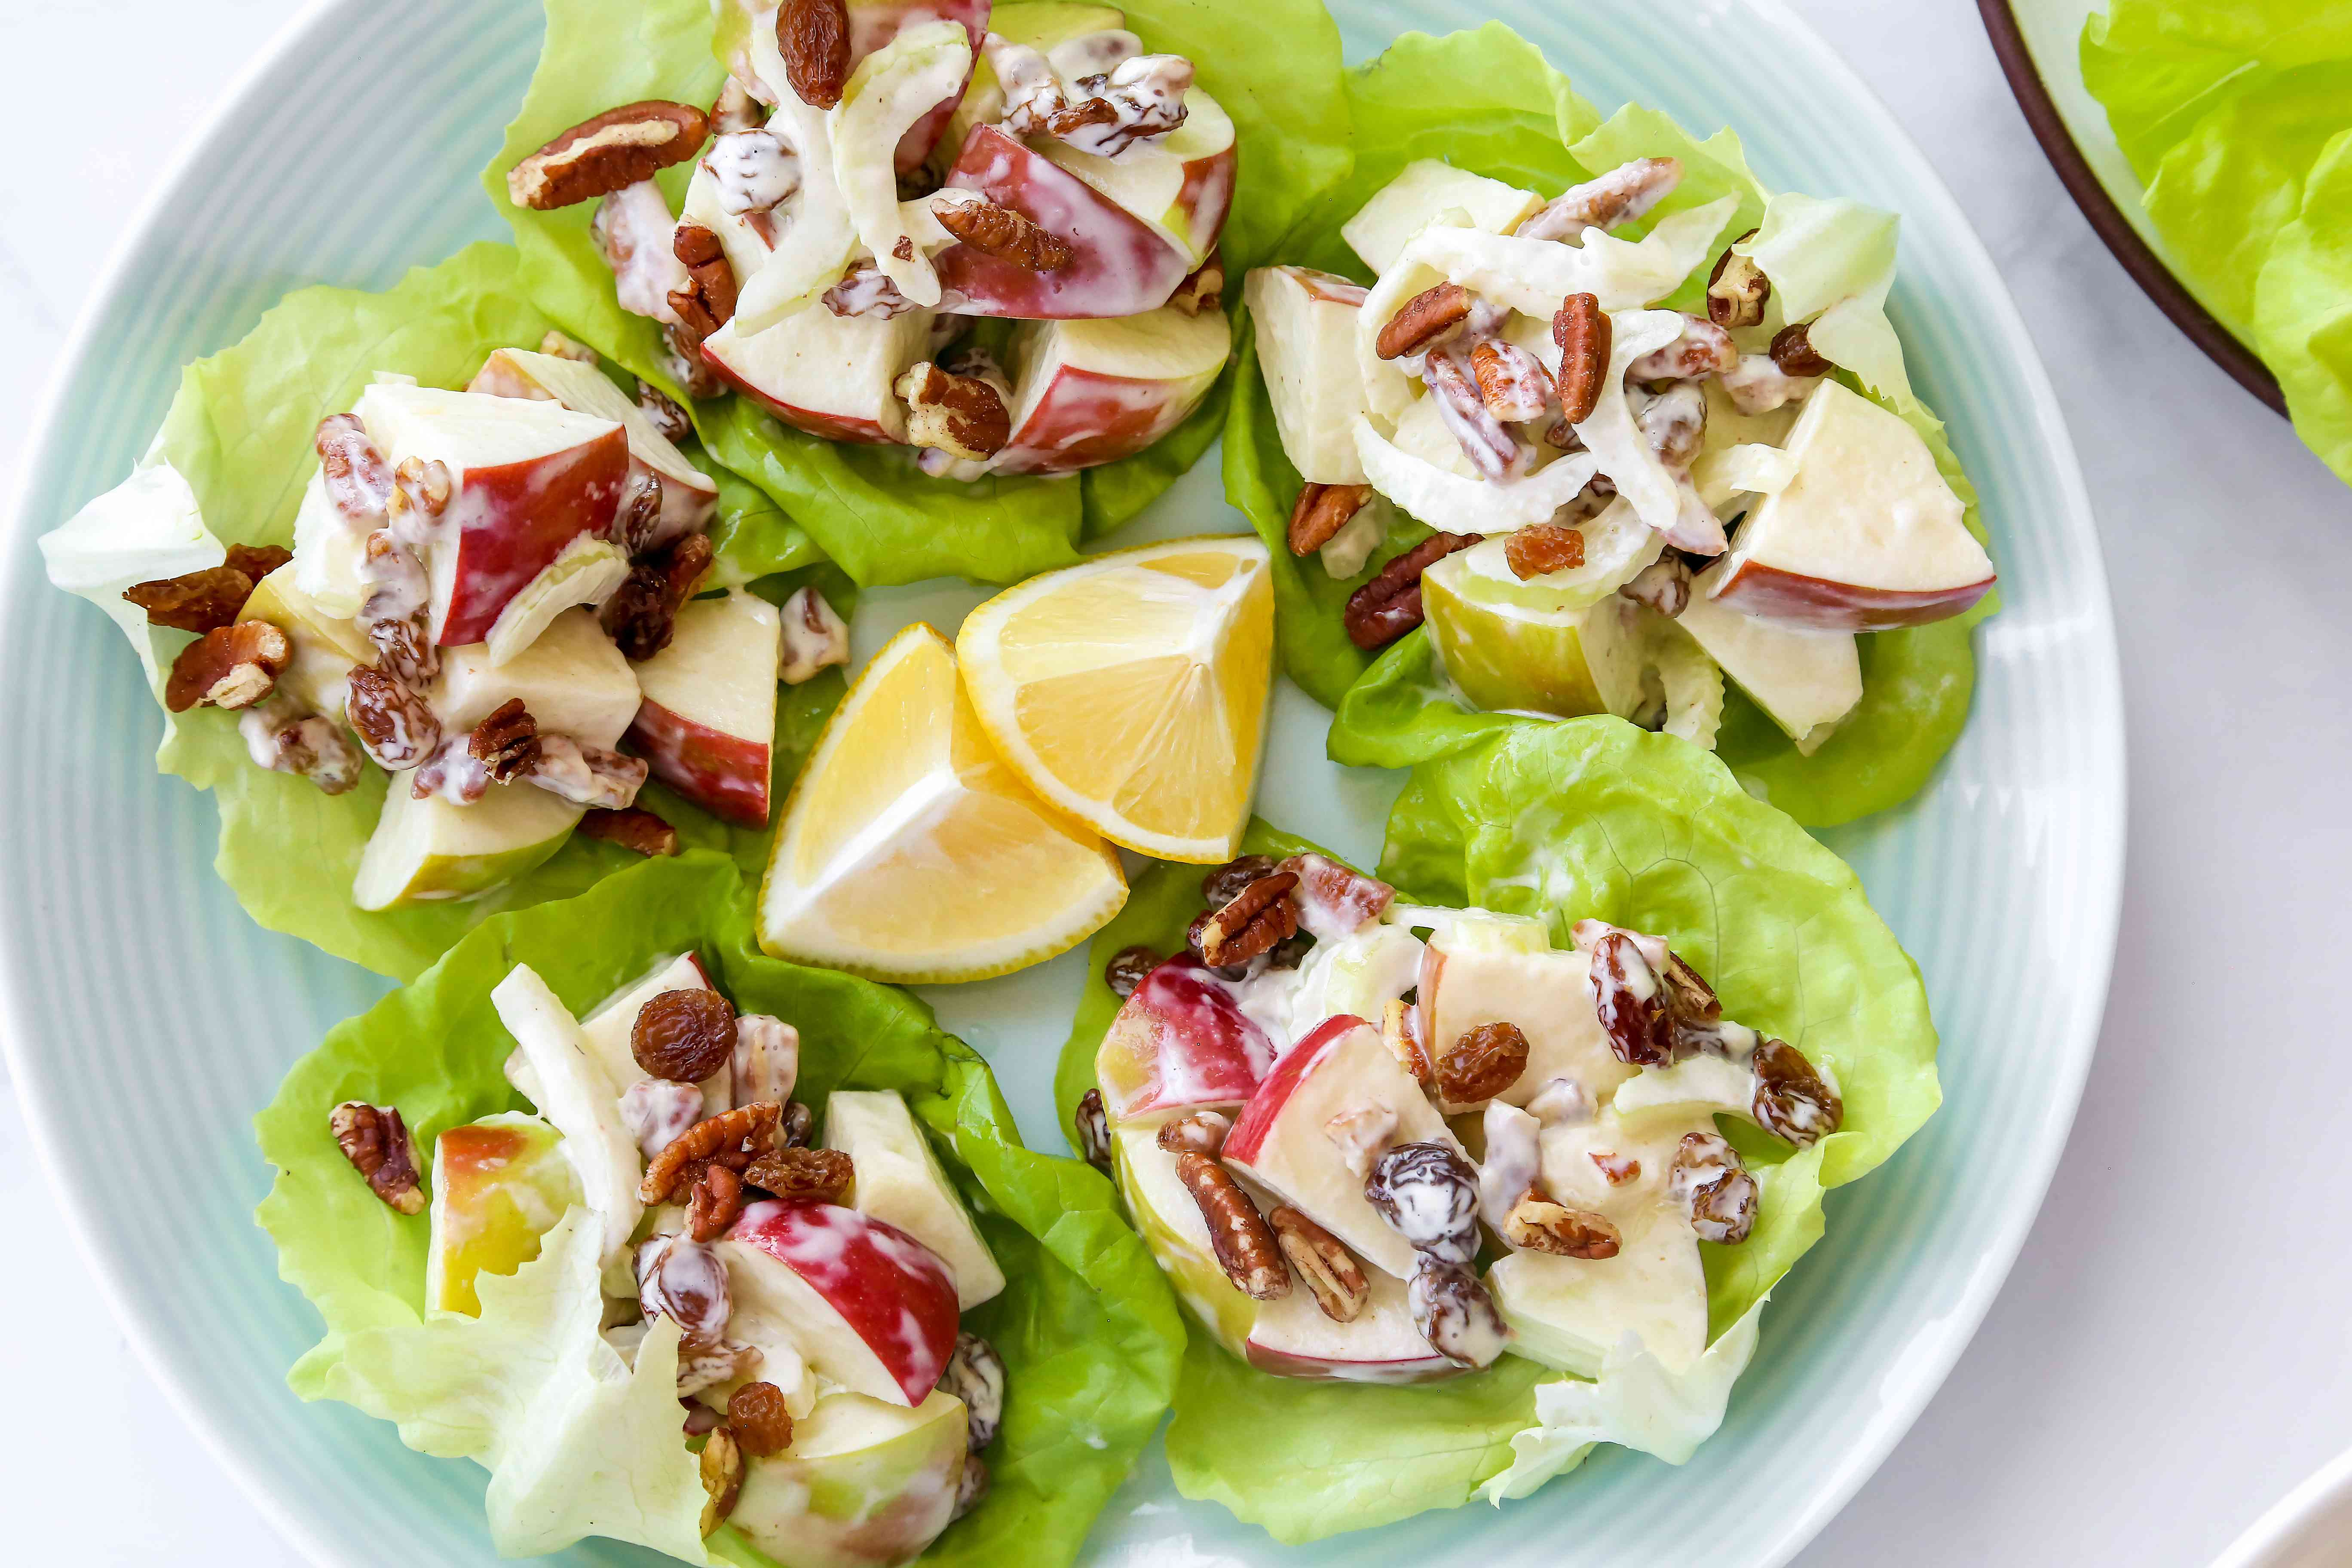 Apple Salad With Pecans and Raisins on a platter